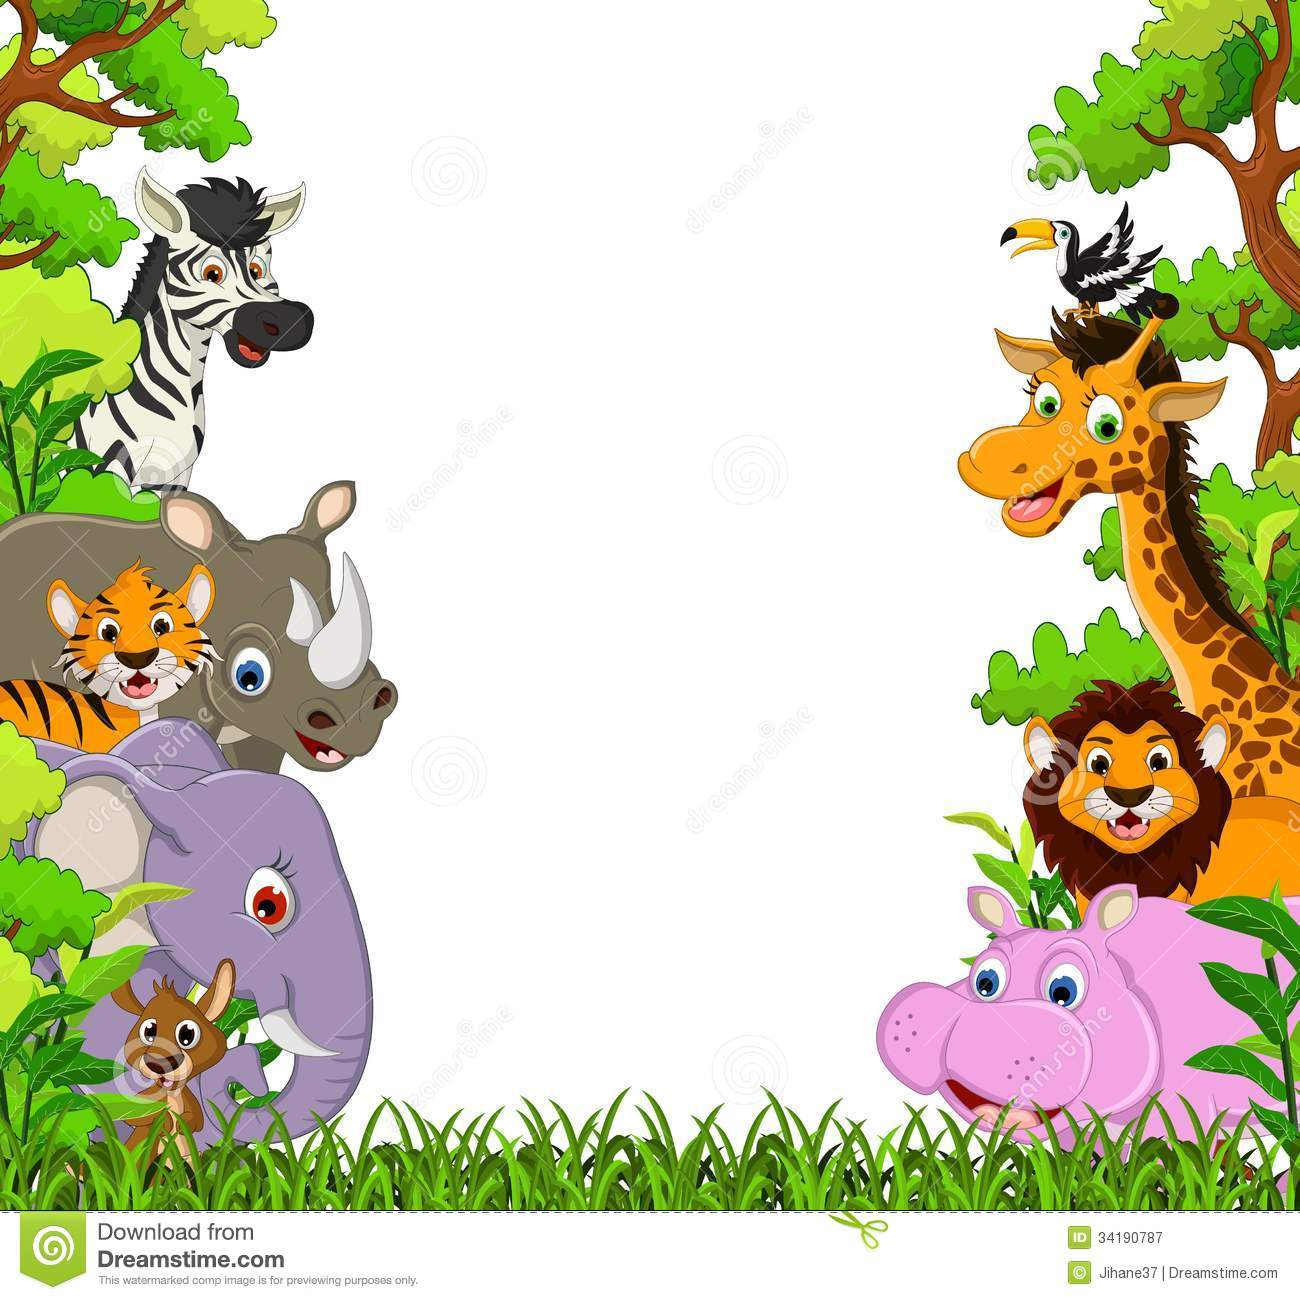 1300x1300 Image For Free Jungle Animal Clipart Cartoon Images Cute Animal